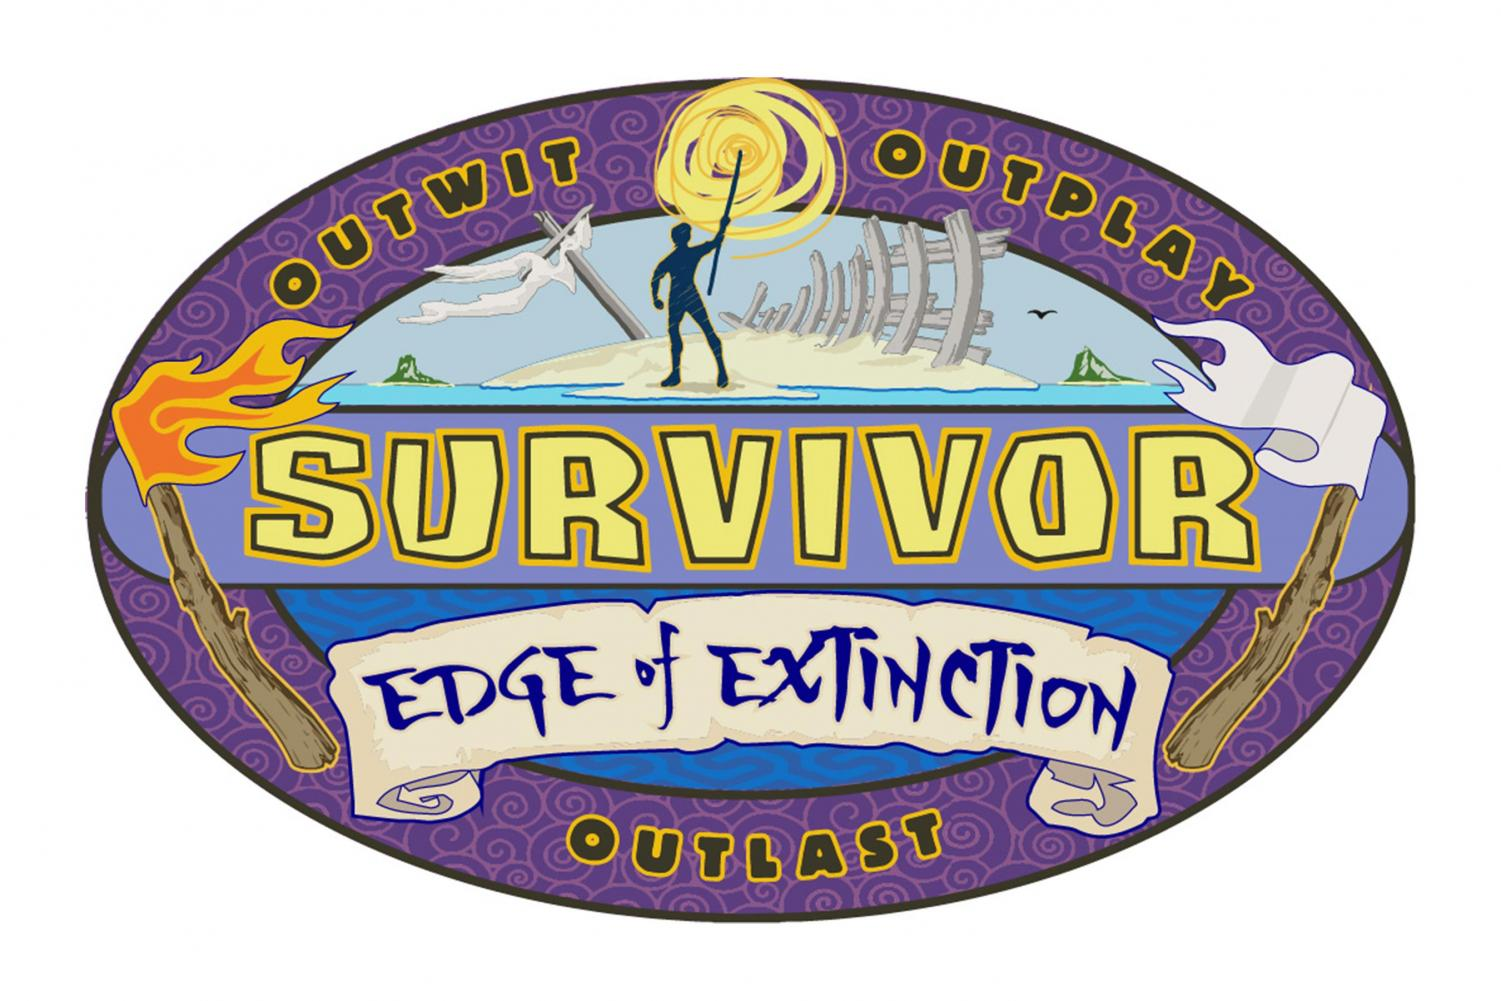 The logo for Survivor's 38th edition features the twist for this year: Edge of Extinction